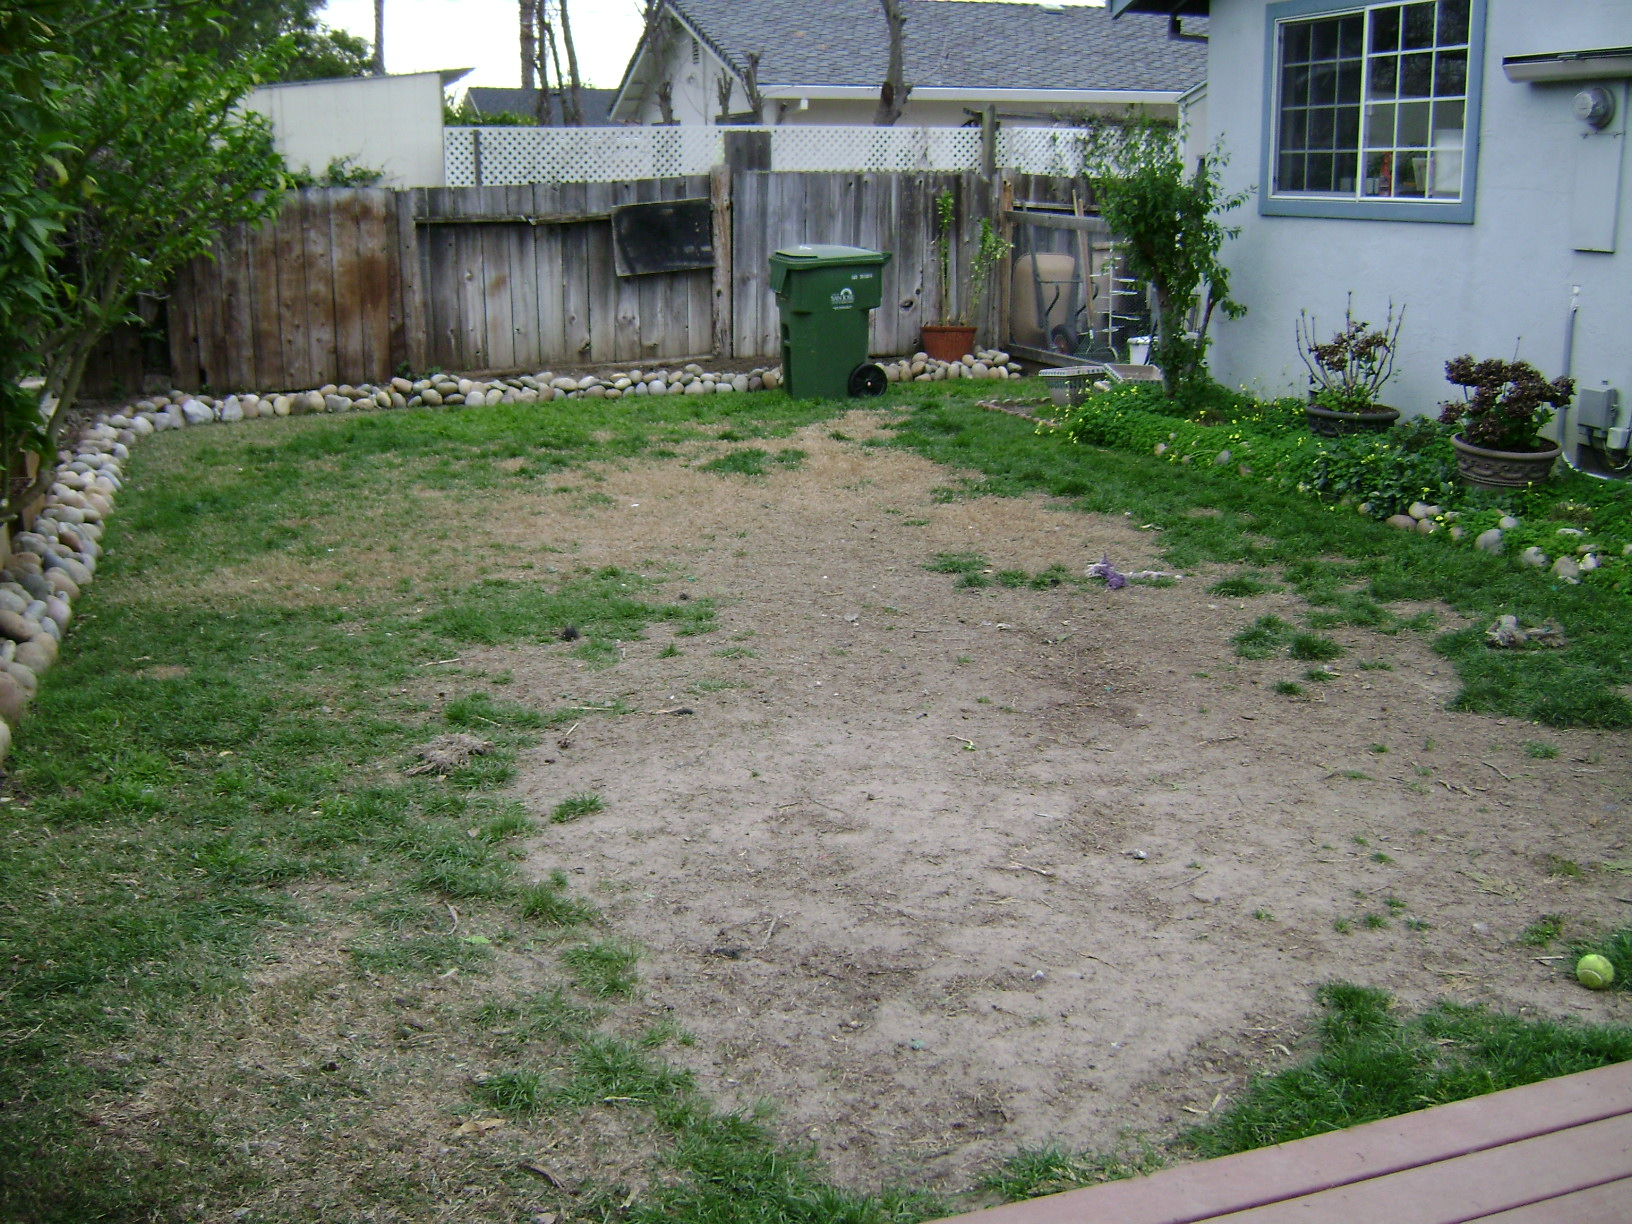 Real grass dead spots with dogs